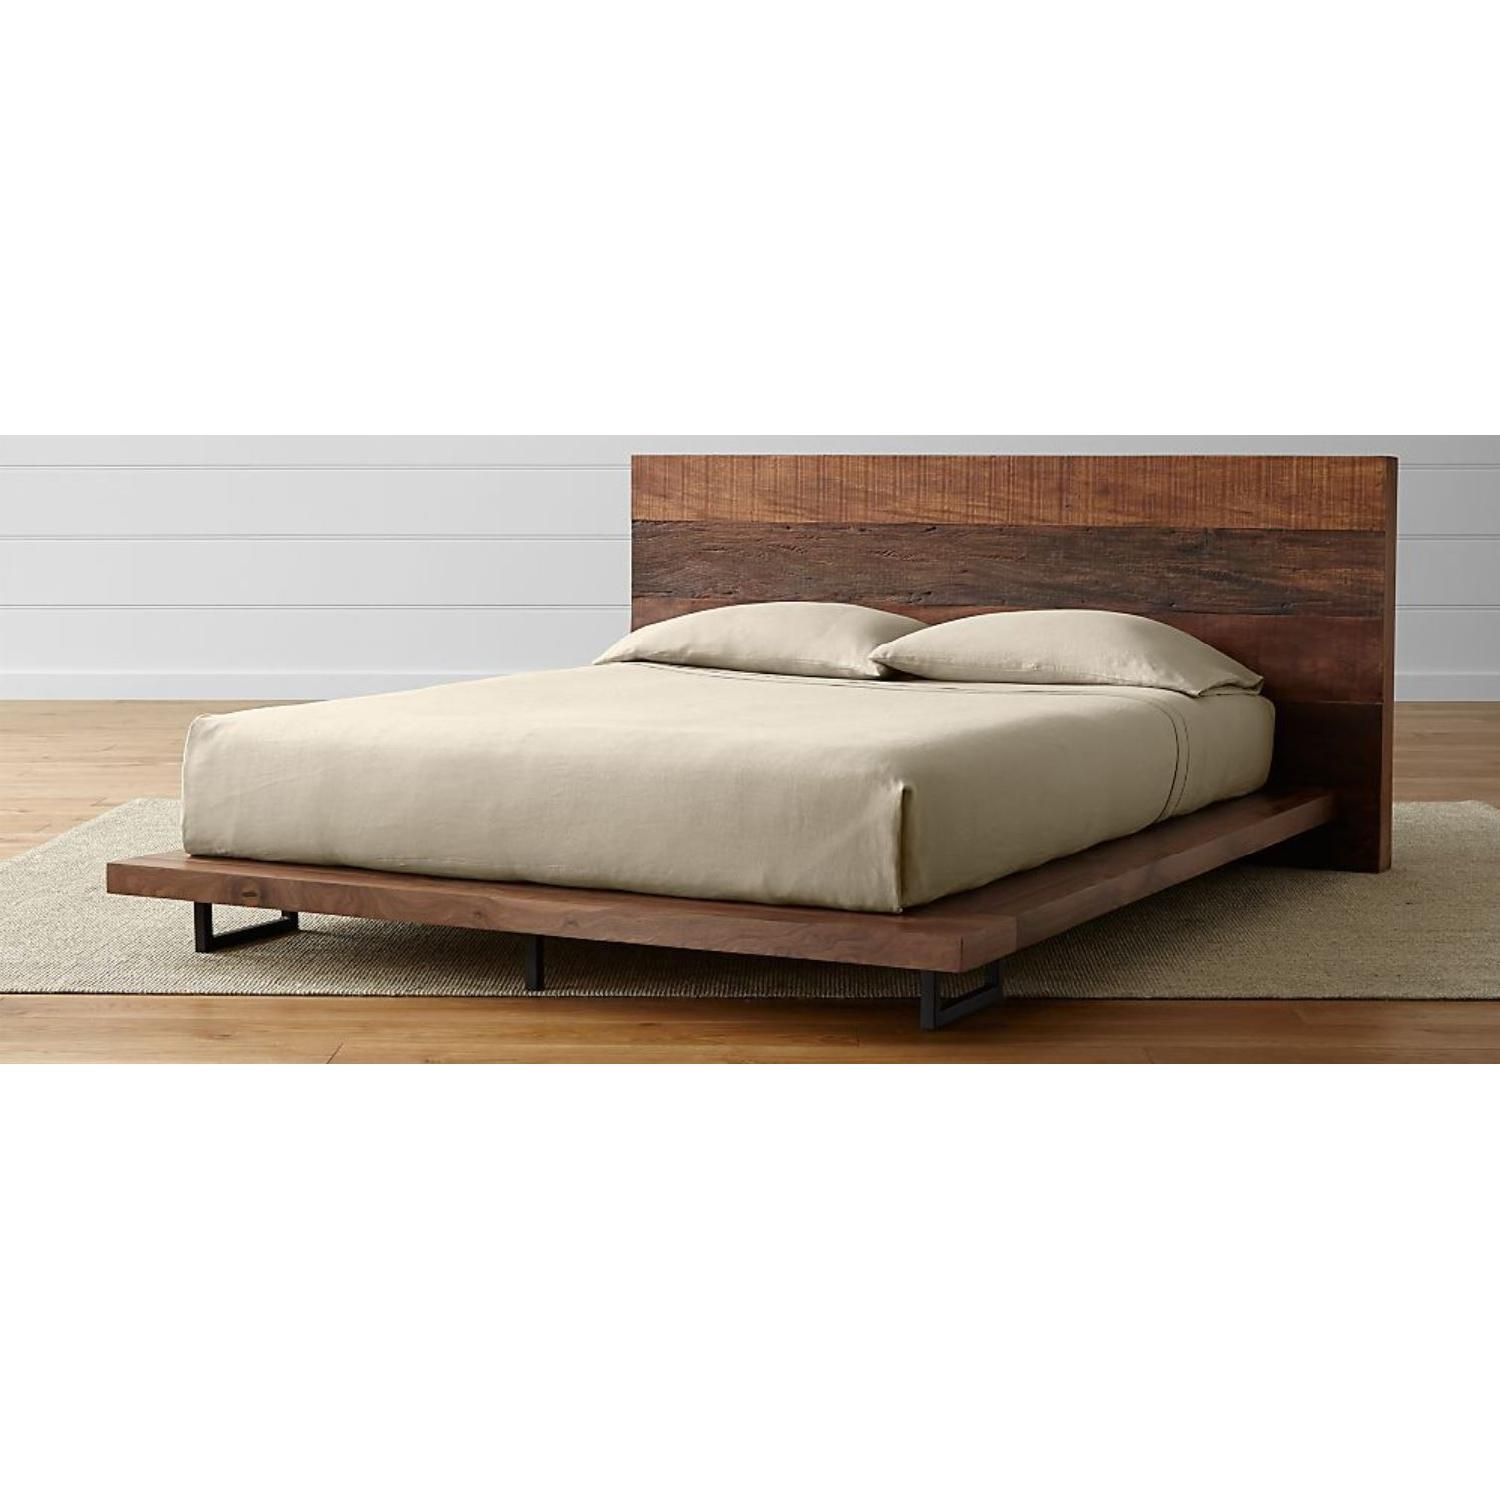 Crate & Barrel Atwood Queen Bed-0